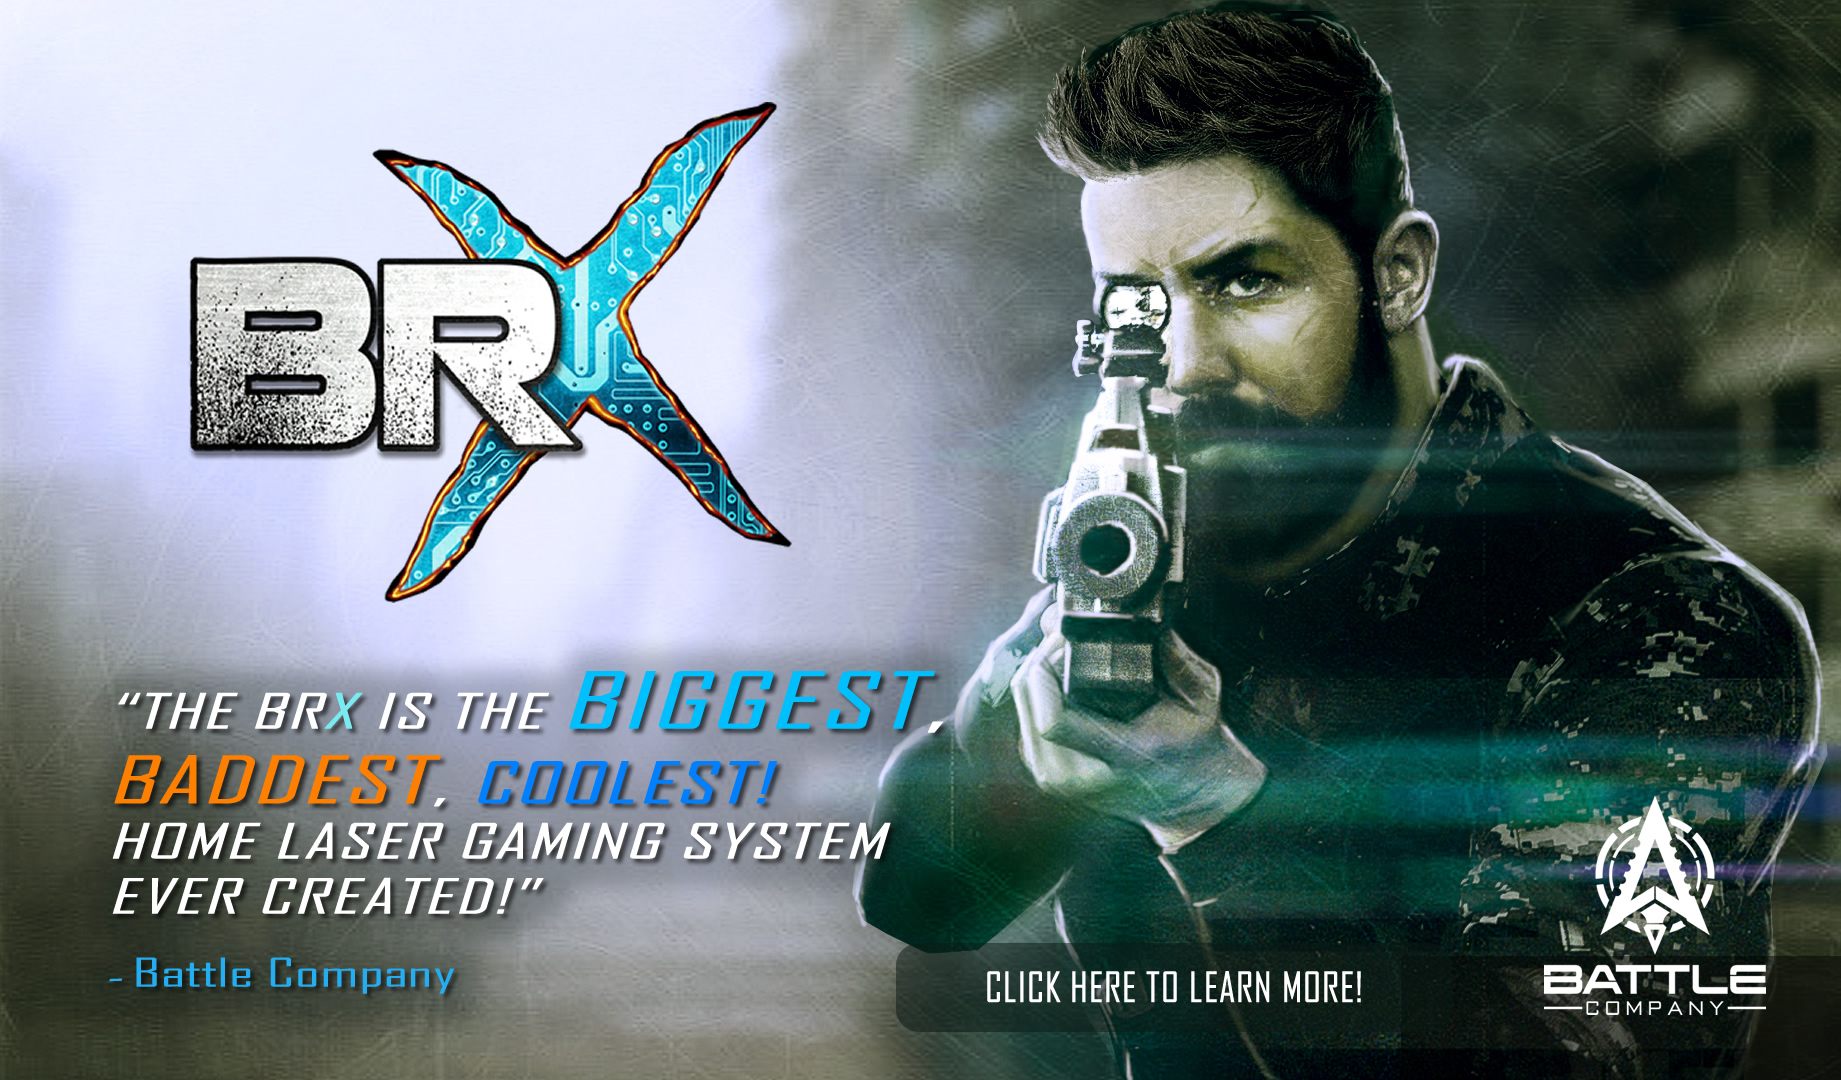 The BRX – THE BEST HOME LASER TAG GUN, EVER!